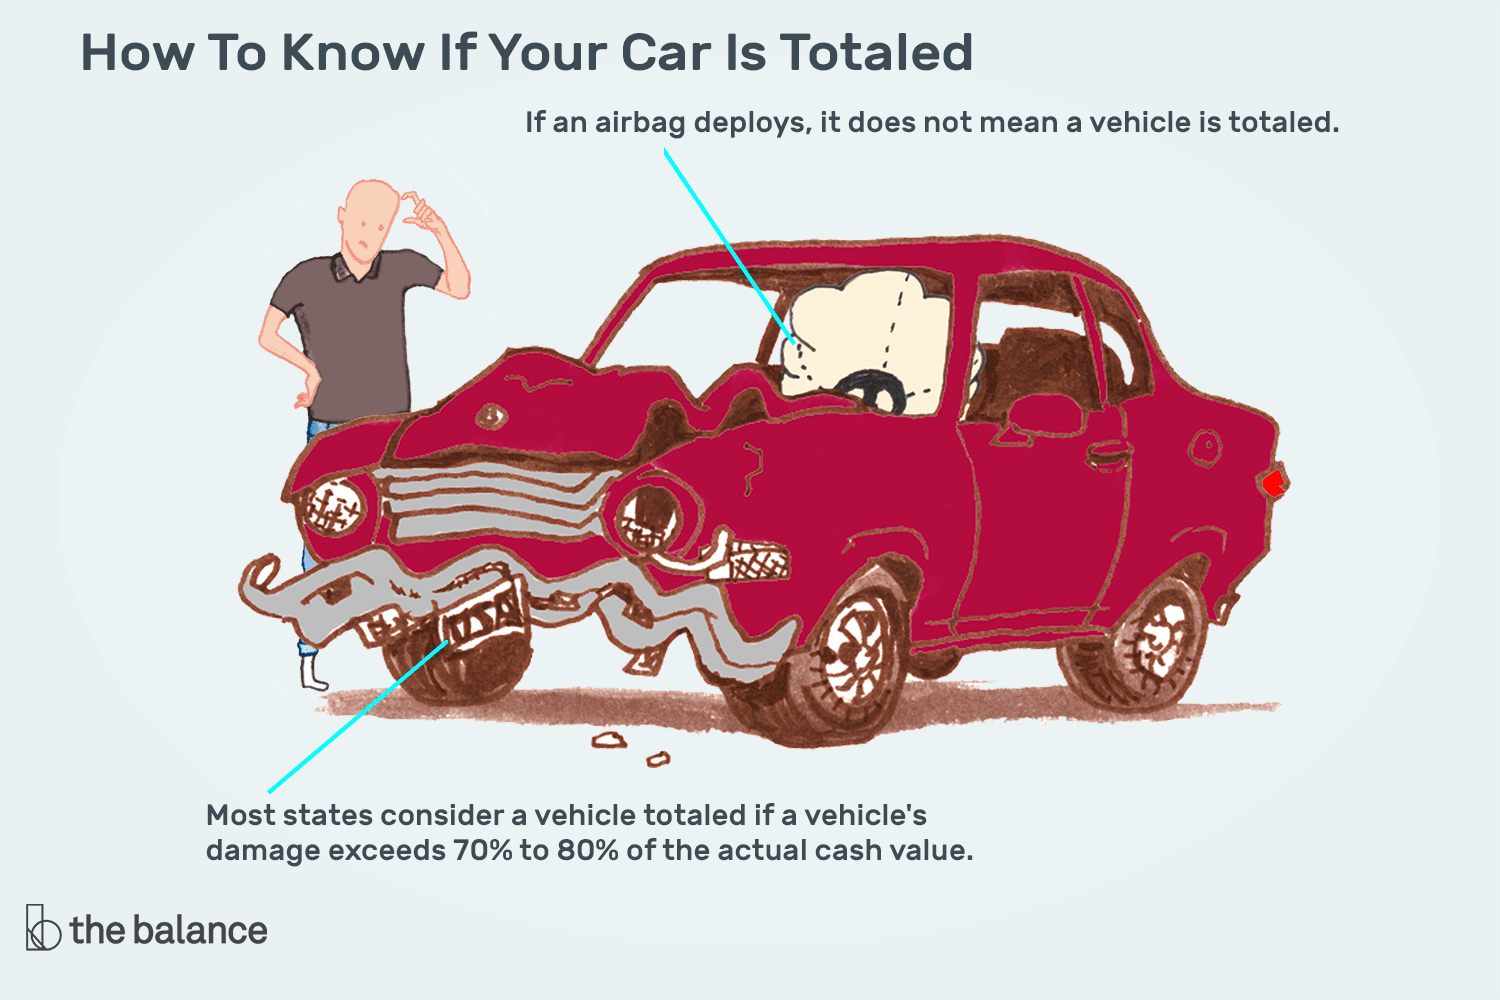 If My Airbags Deployed, Is My Car Totaled?